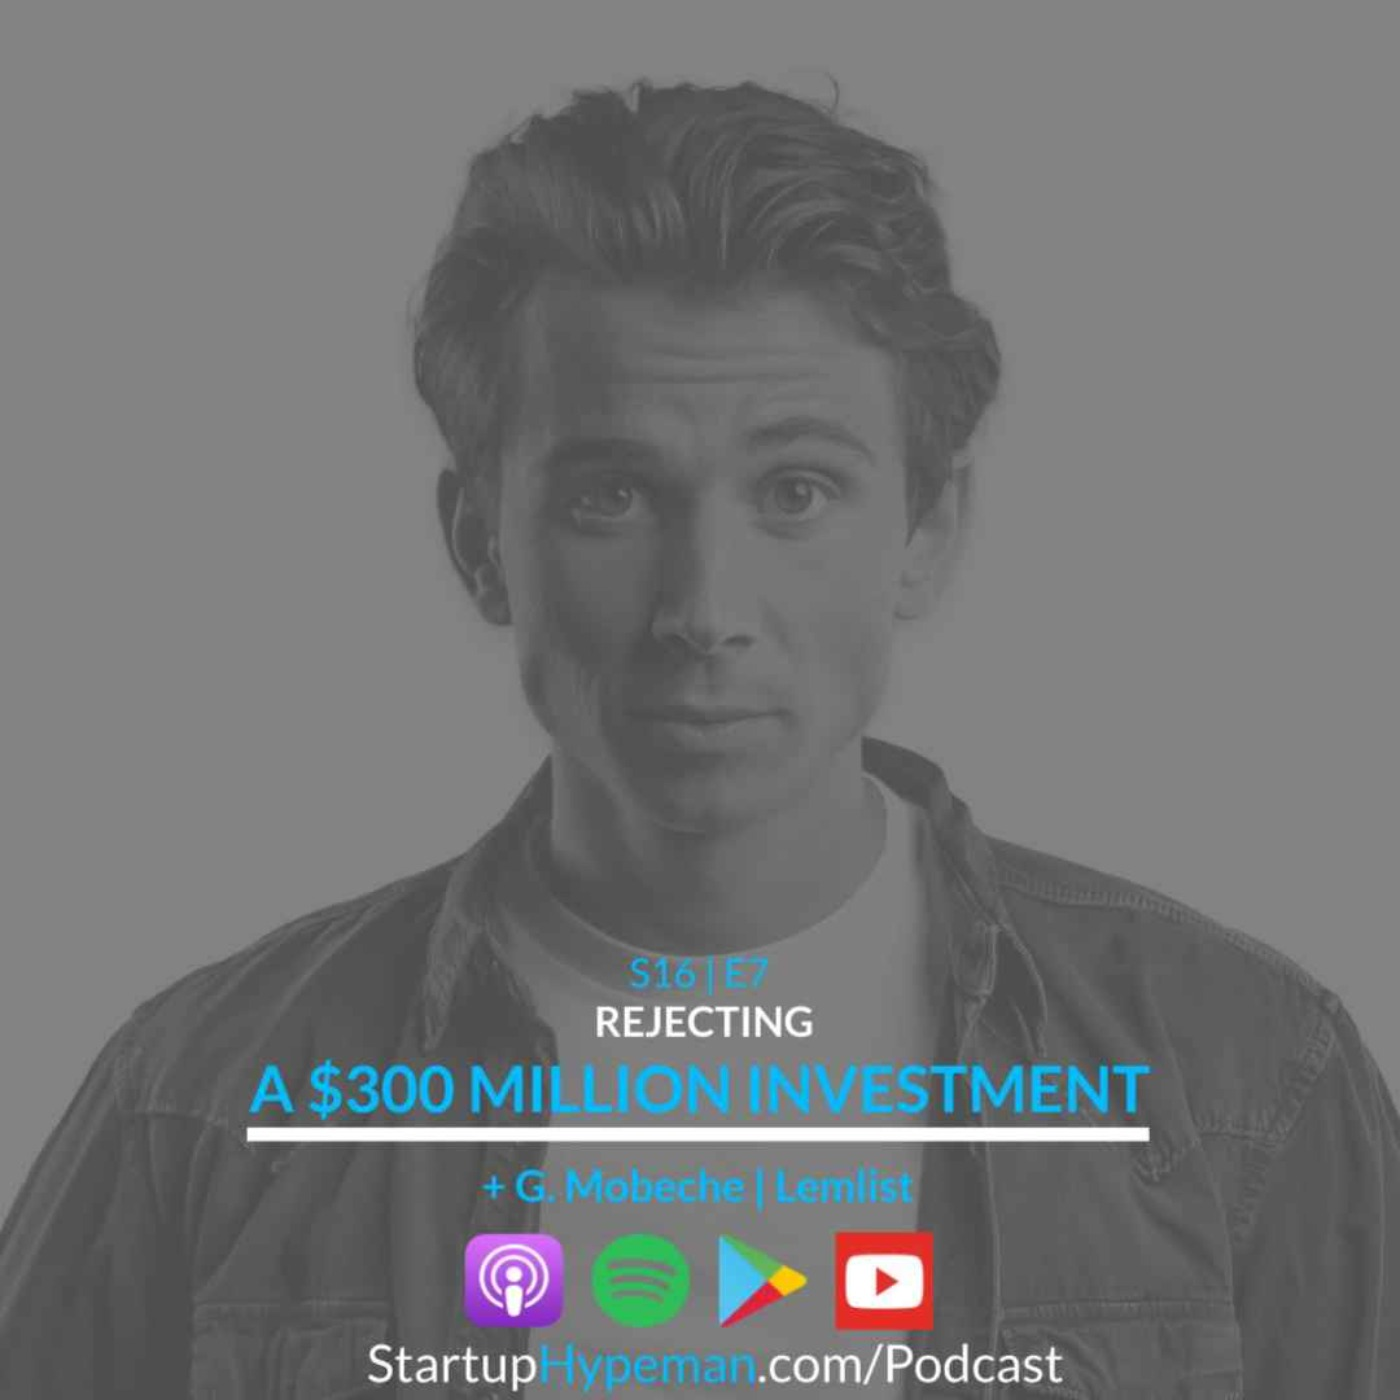 S16E7: REJECTING a $30 Million Investment with lemlist CEO G. Mobeche